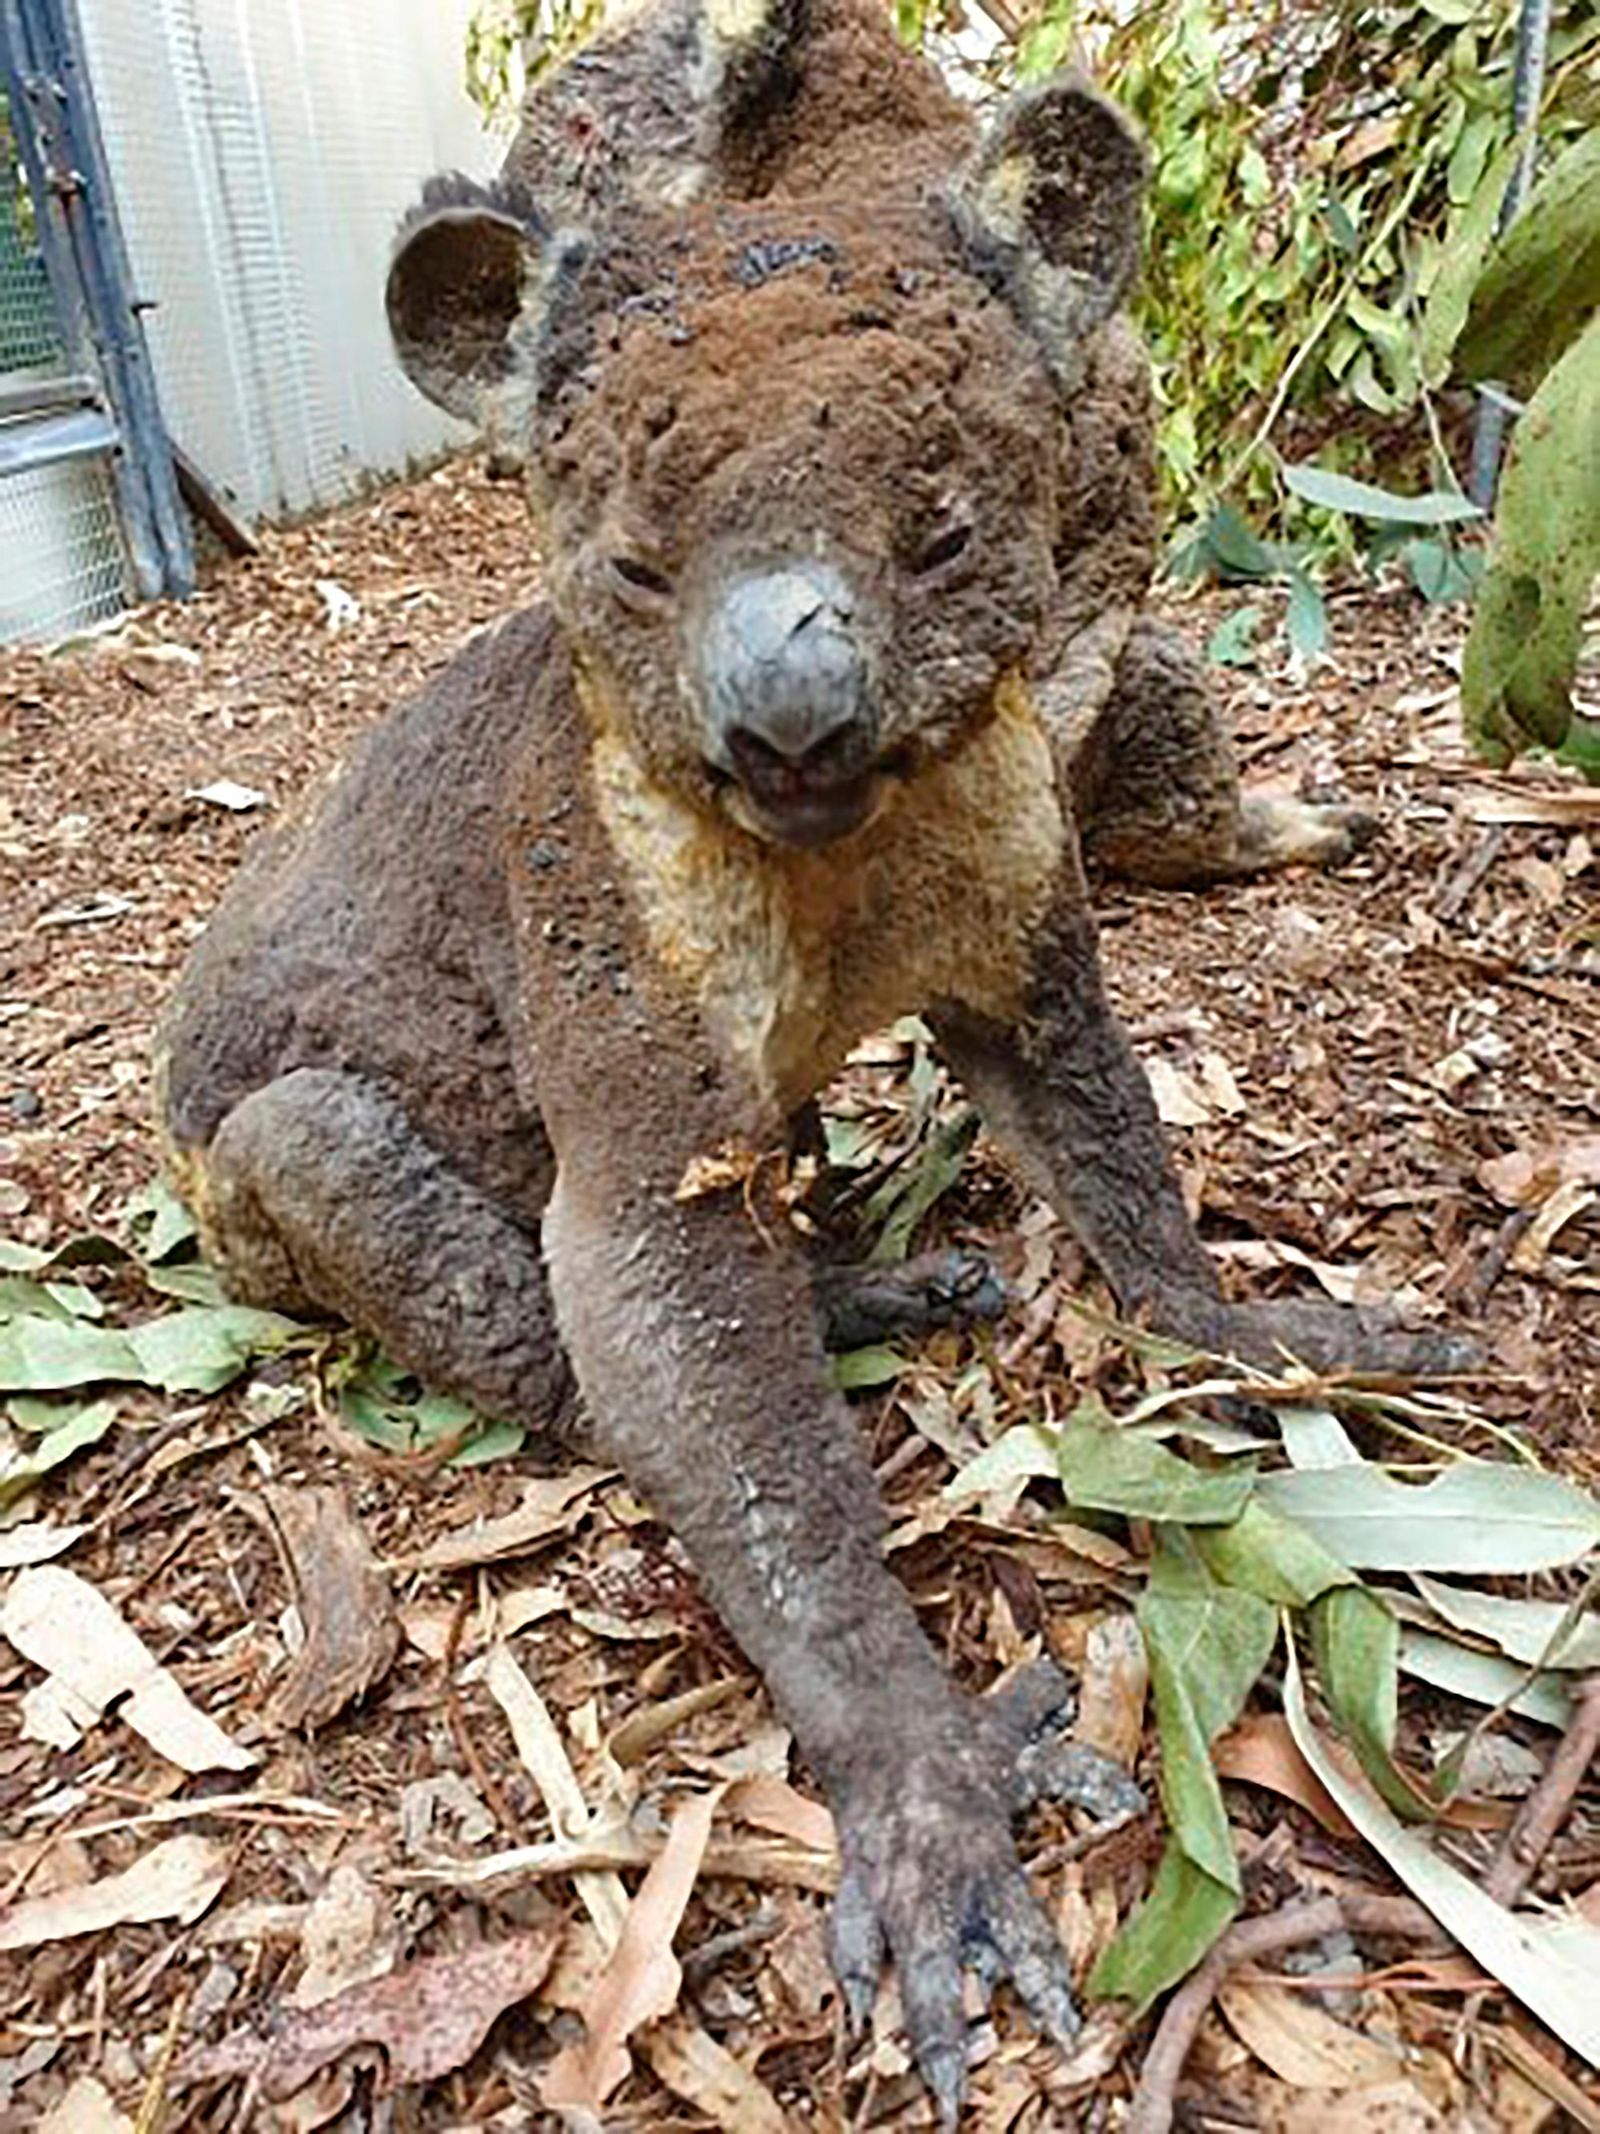 This photo taken in early January, 2020, and provided Sunday, Jan. 5, 2020, by Dana Mitchell from the Kangaroo Island Wildlife Park shows a rescued koala injured in a bushfire in Kangaroo Island, South Australia. Devastating wildfires over recent days have undone decades of careful conservation work on Kangaroo Island and have threatened to wipe out some of the island's unique fauna altogether. (Dana Mitchell/Kangaroo Island Wildlife Park via AP)